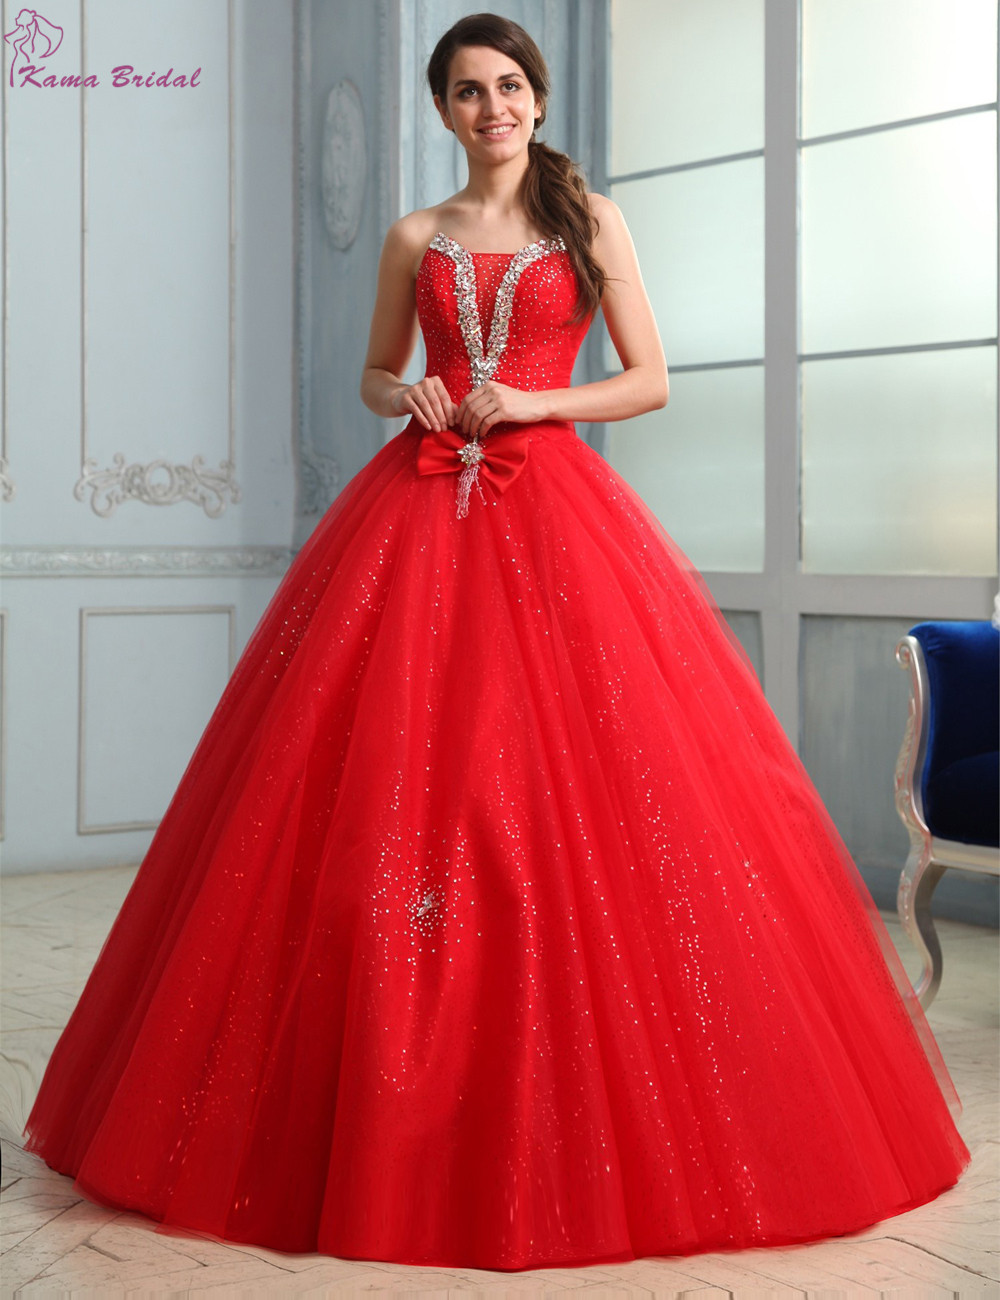 7742fe483 vestidos de 15 anos Red Puddy Tulle Prom Dress 2016 Strapless Beading  Crystal Vintage Prom Gown Lace up masquerade ball gowns